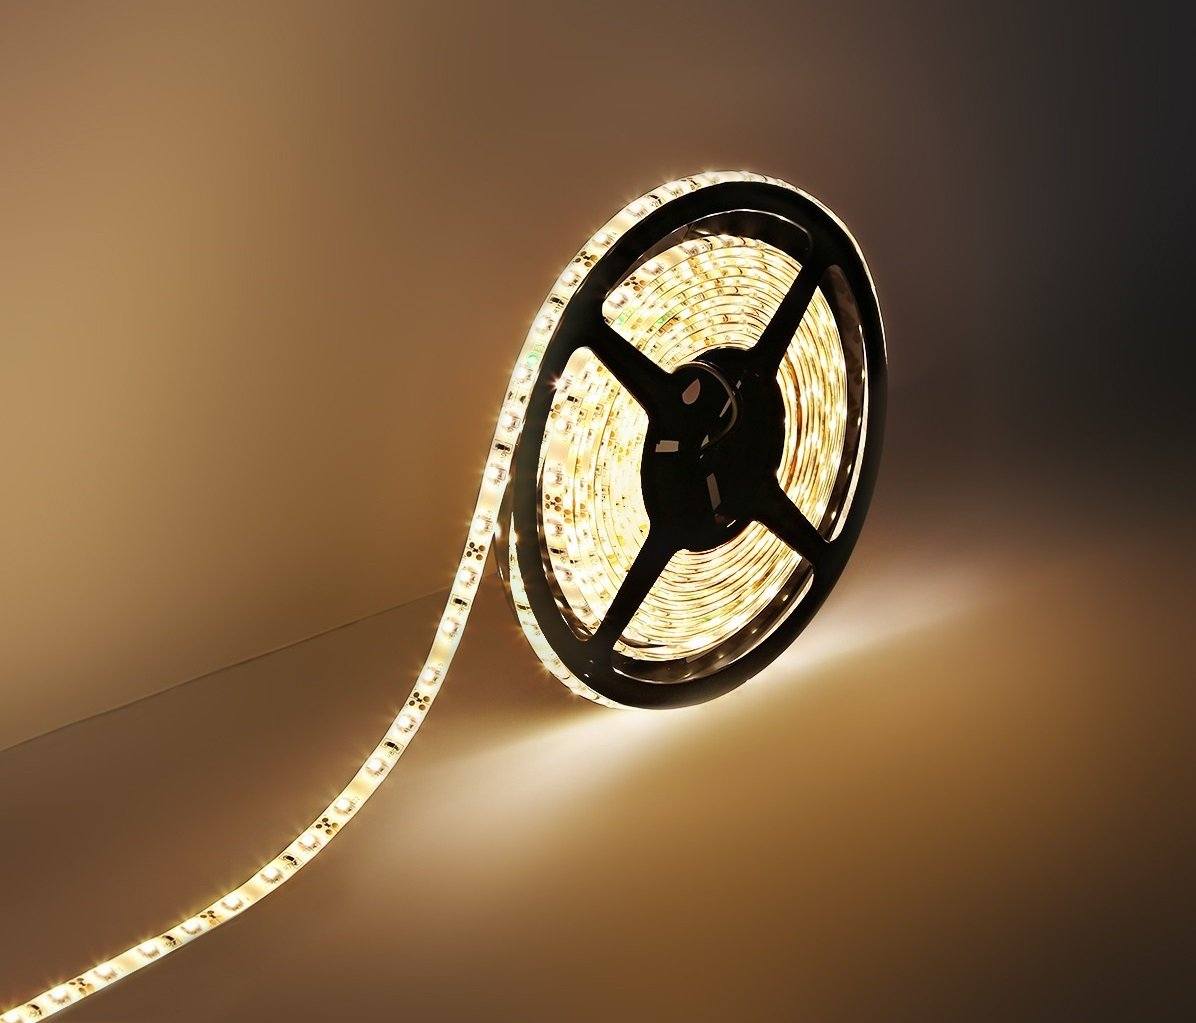 Worm LED strip for stretch ceiling